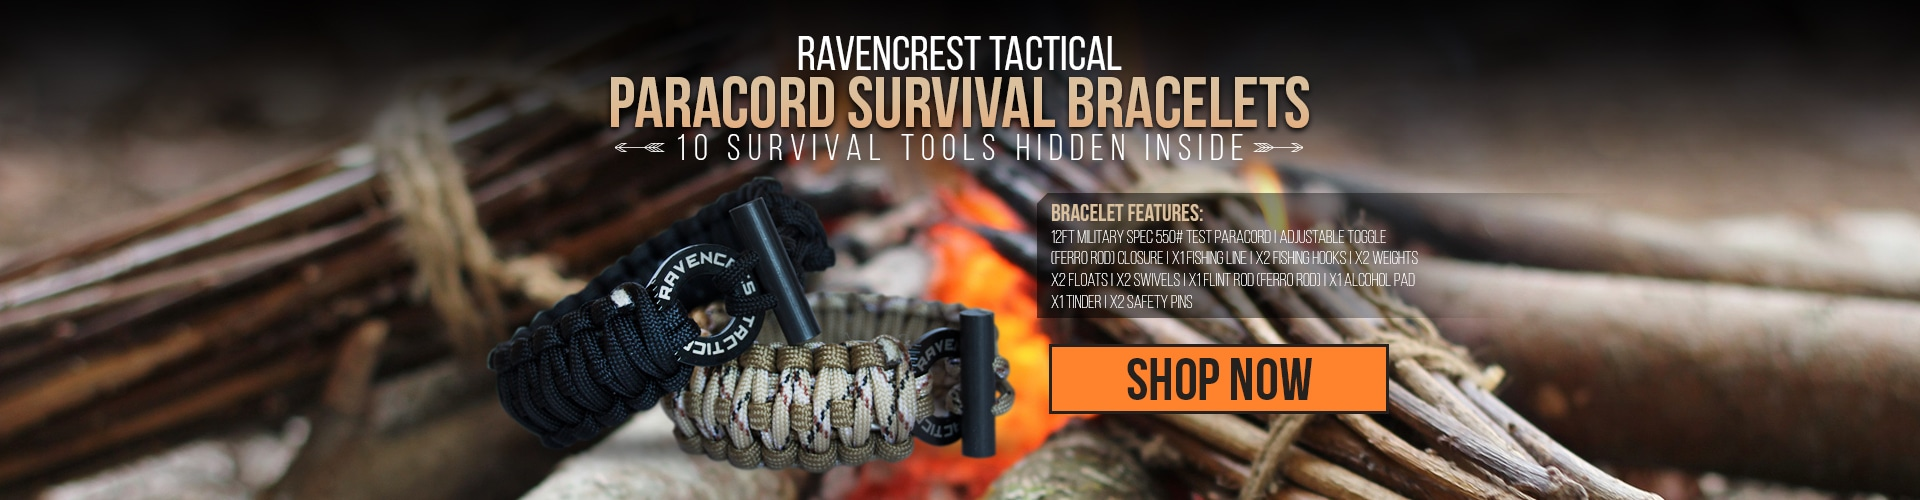 RavenCrest Tactical Paracord Survival Bracelet